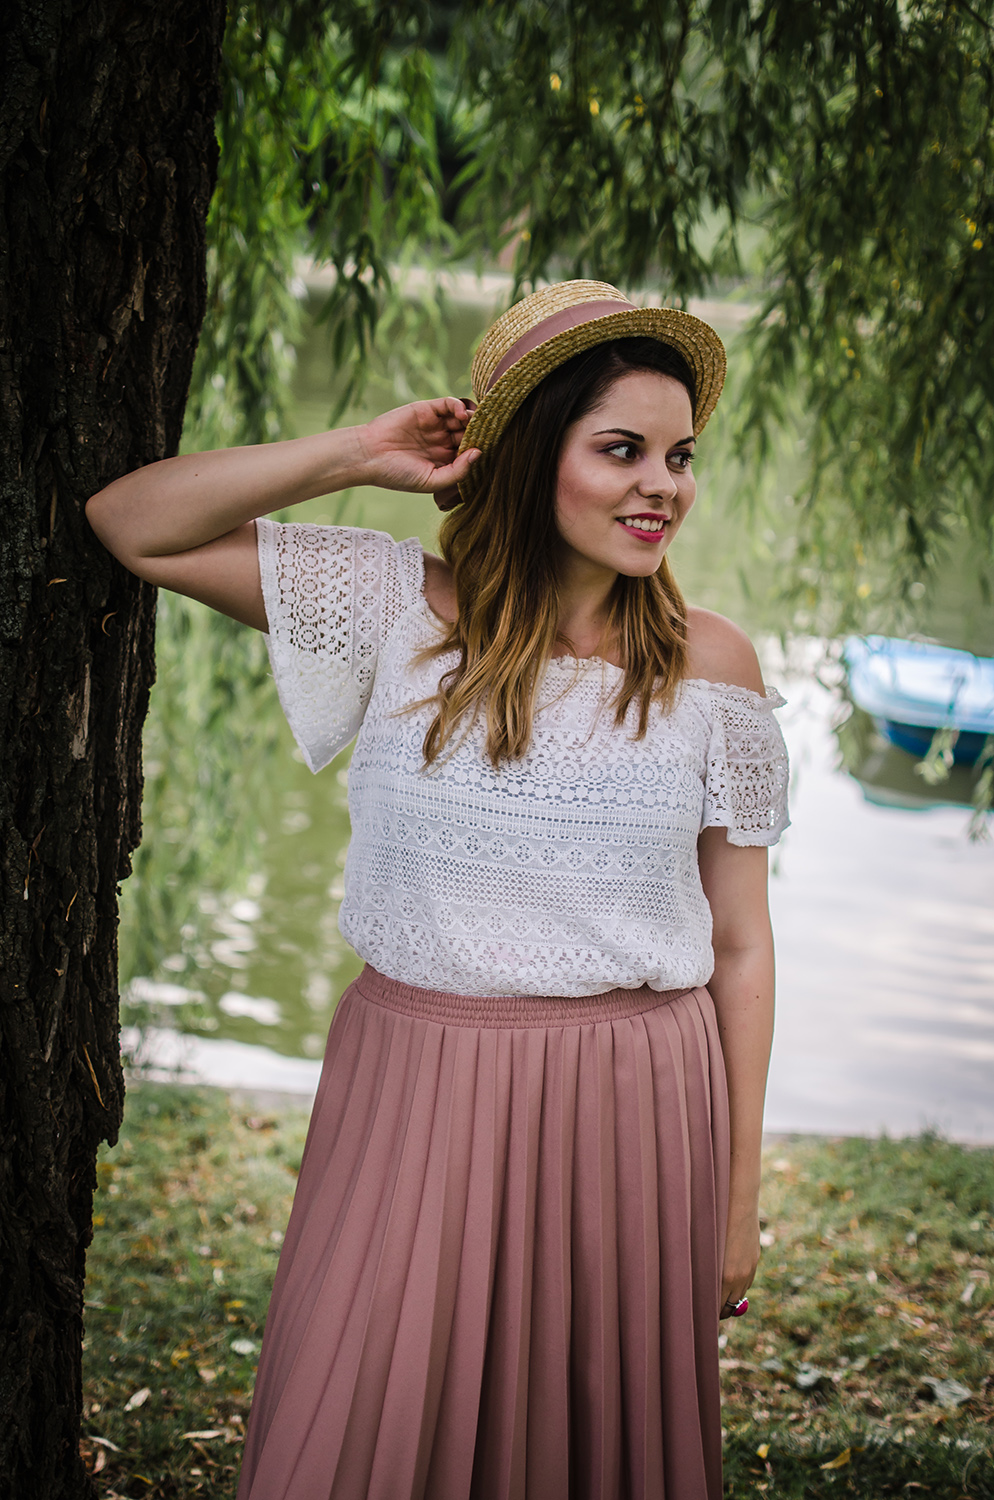 pink pleated skirt straw hat picnic outfit anotherside of me blog